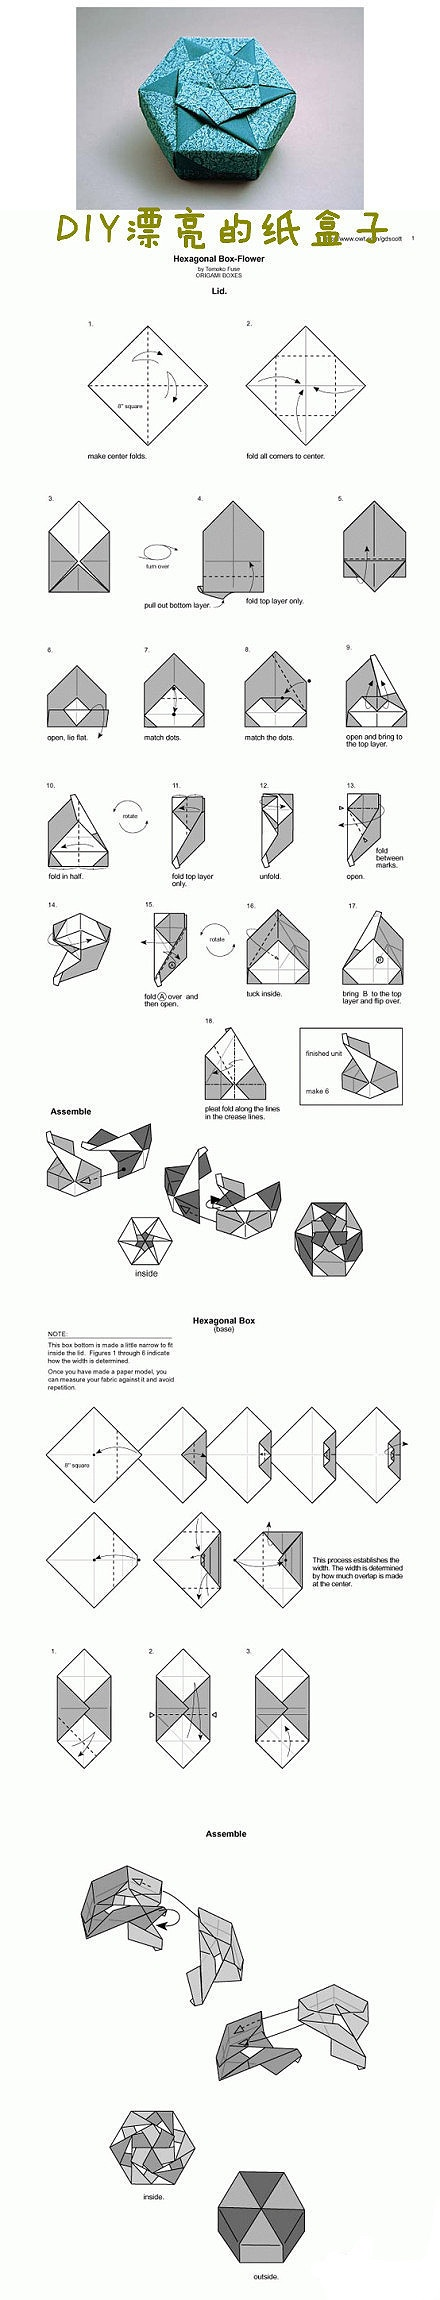 origami hexagon flower box don t know if i can make it but it sure looks cool  [ 440 x 2300 Pixel ]